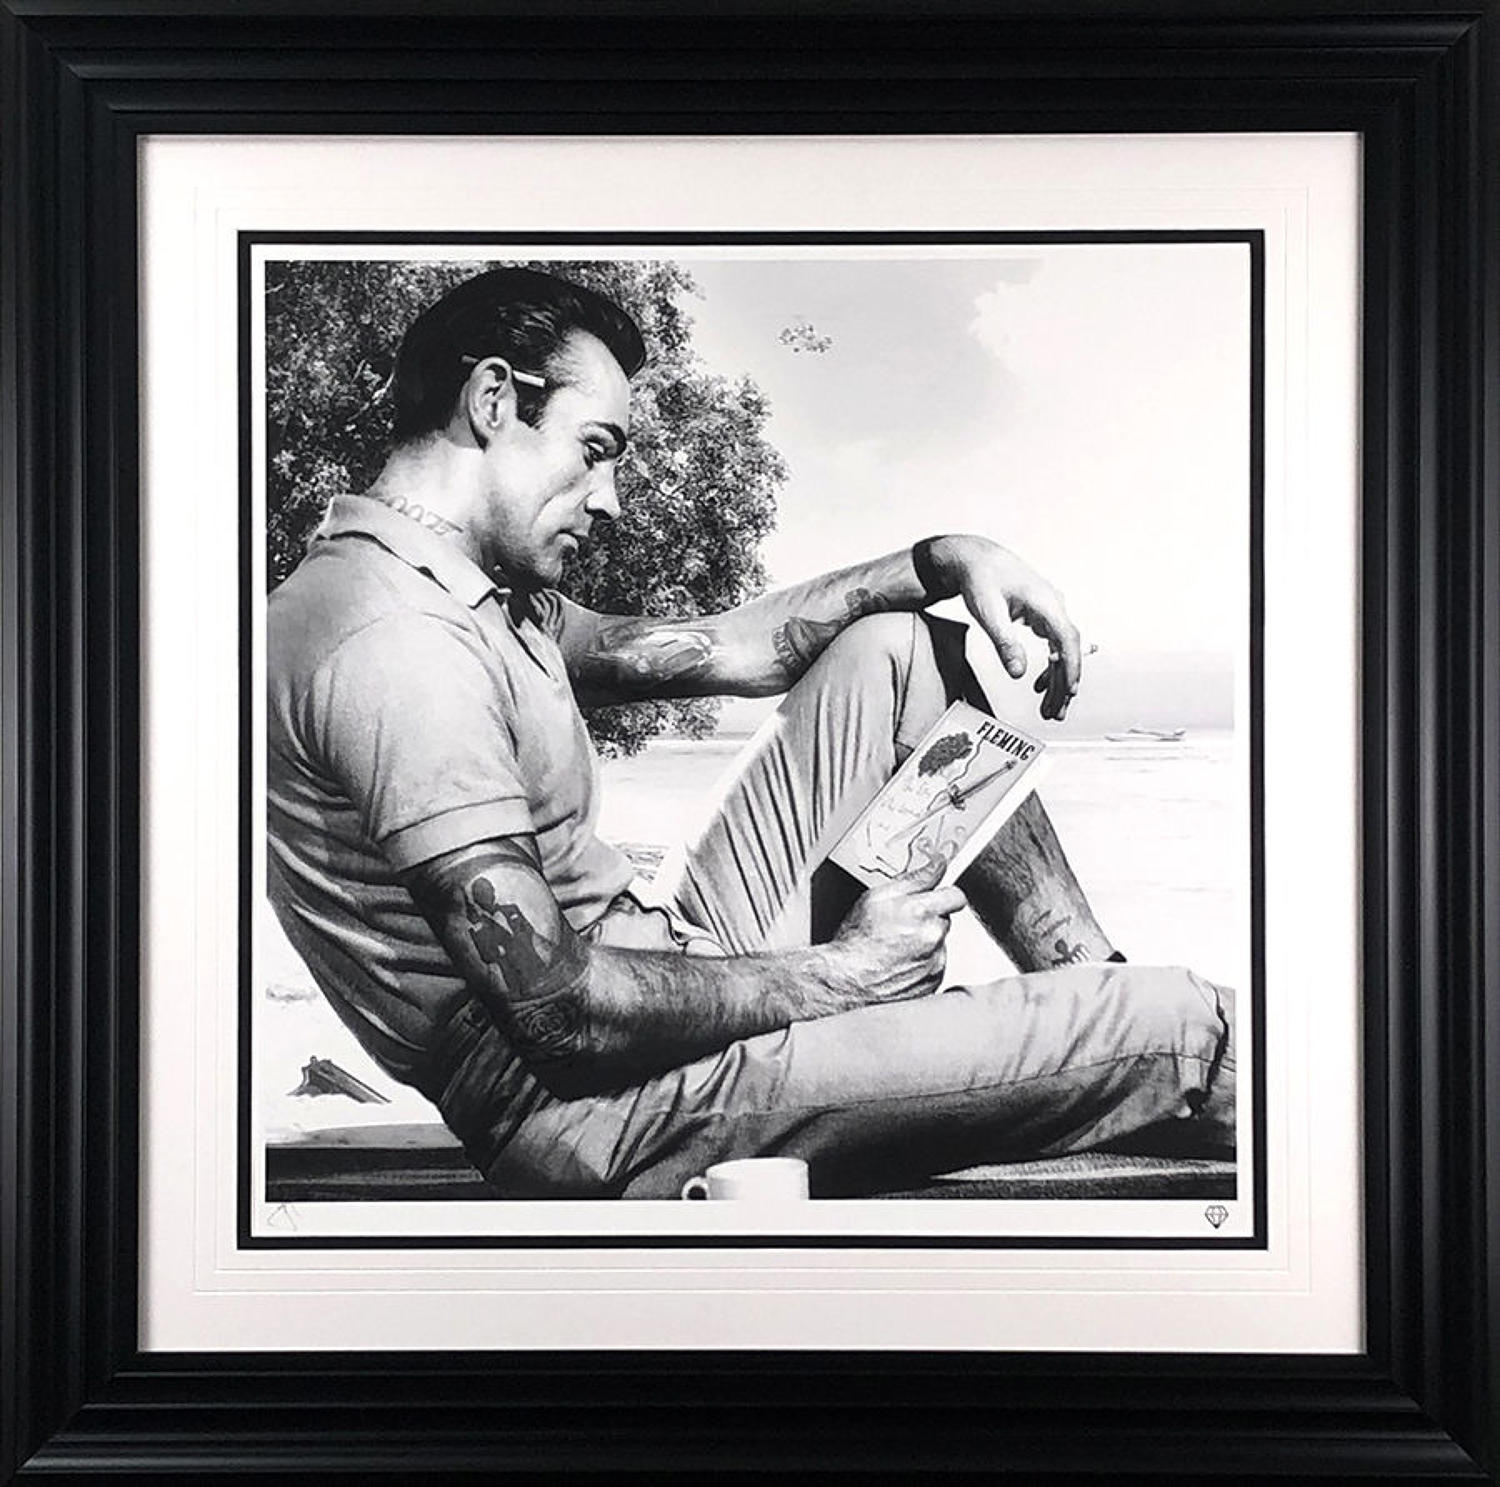 On Vacation (Black and White) Framed Art Print By JJ Adams